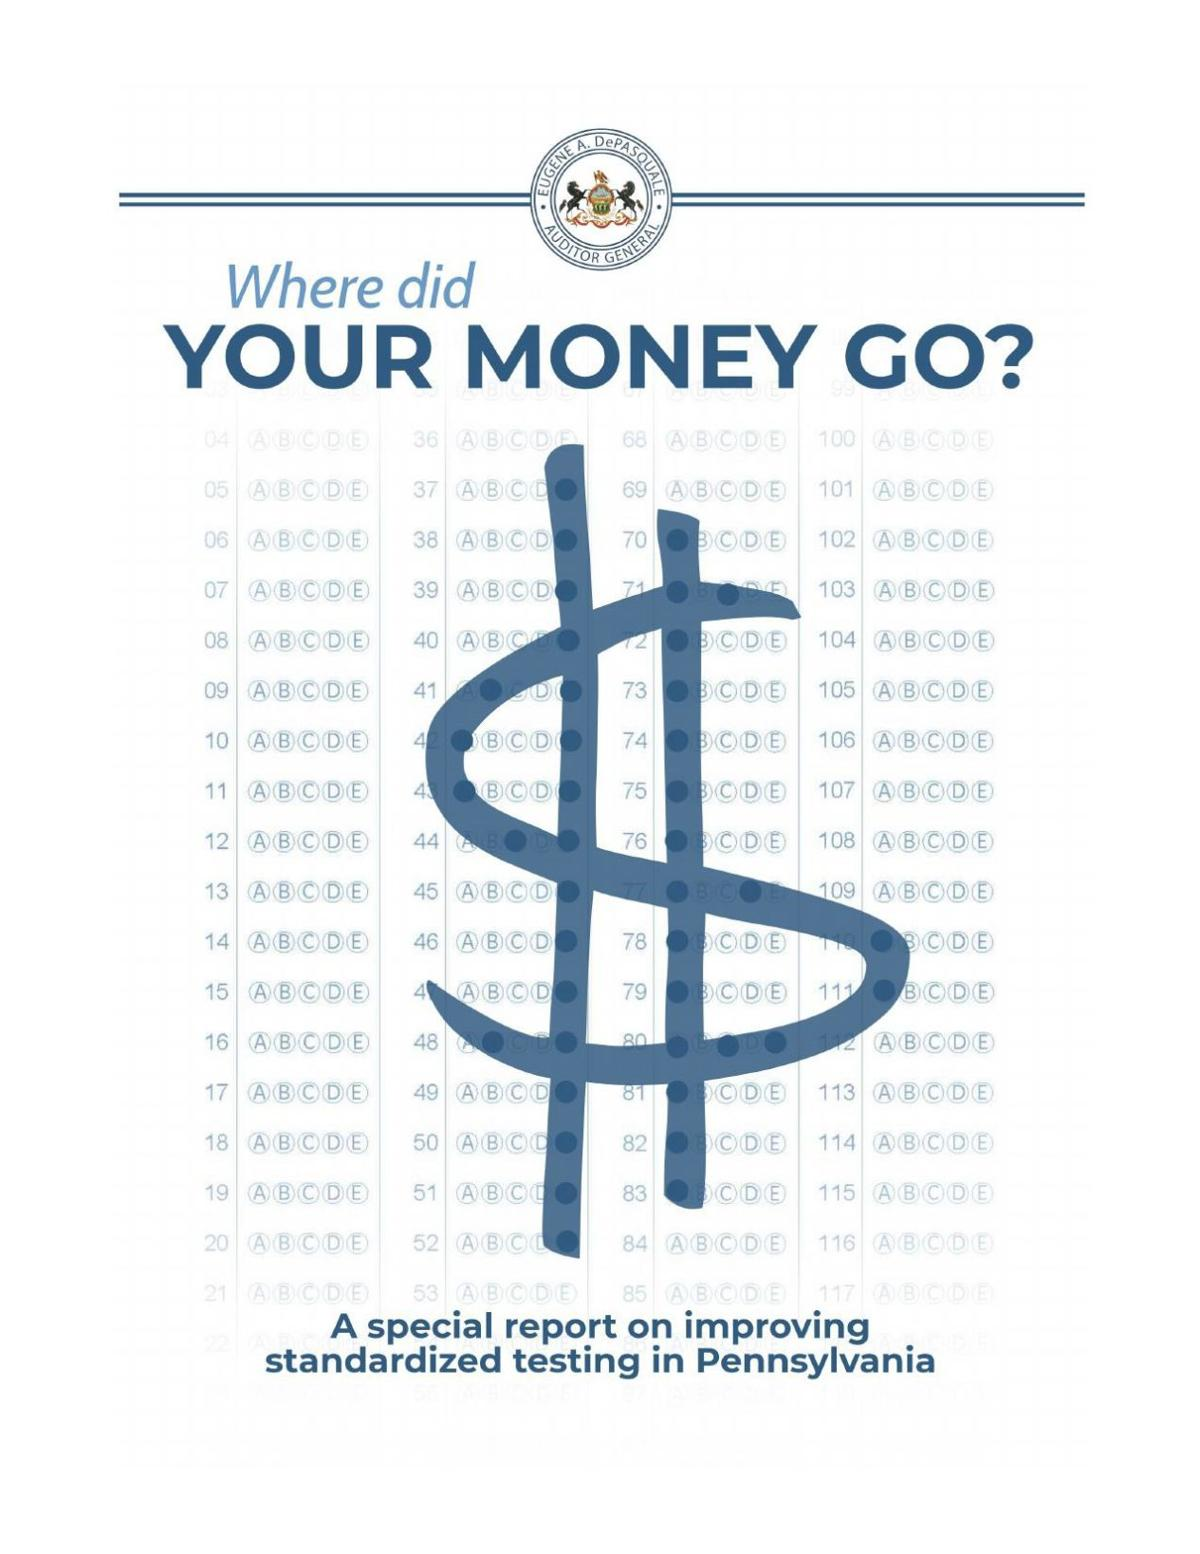 AG Report: Where did your money go?